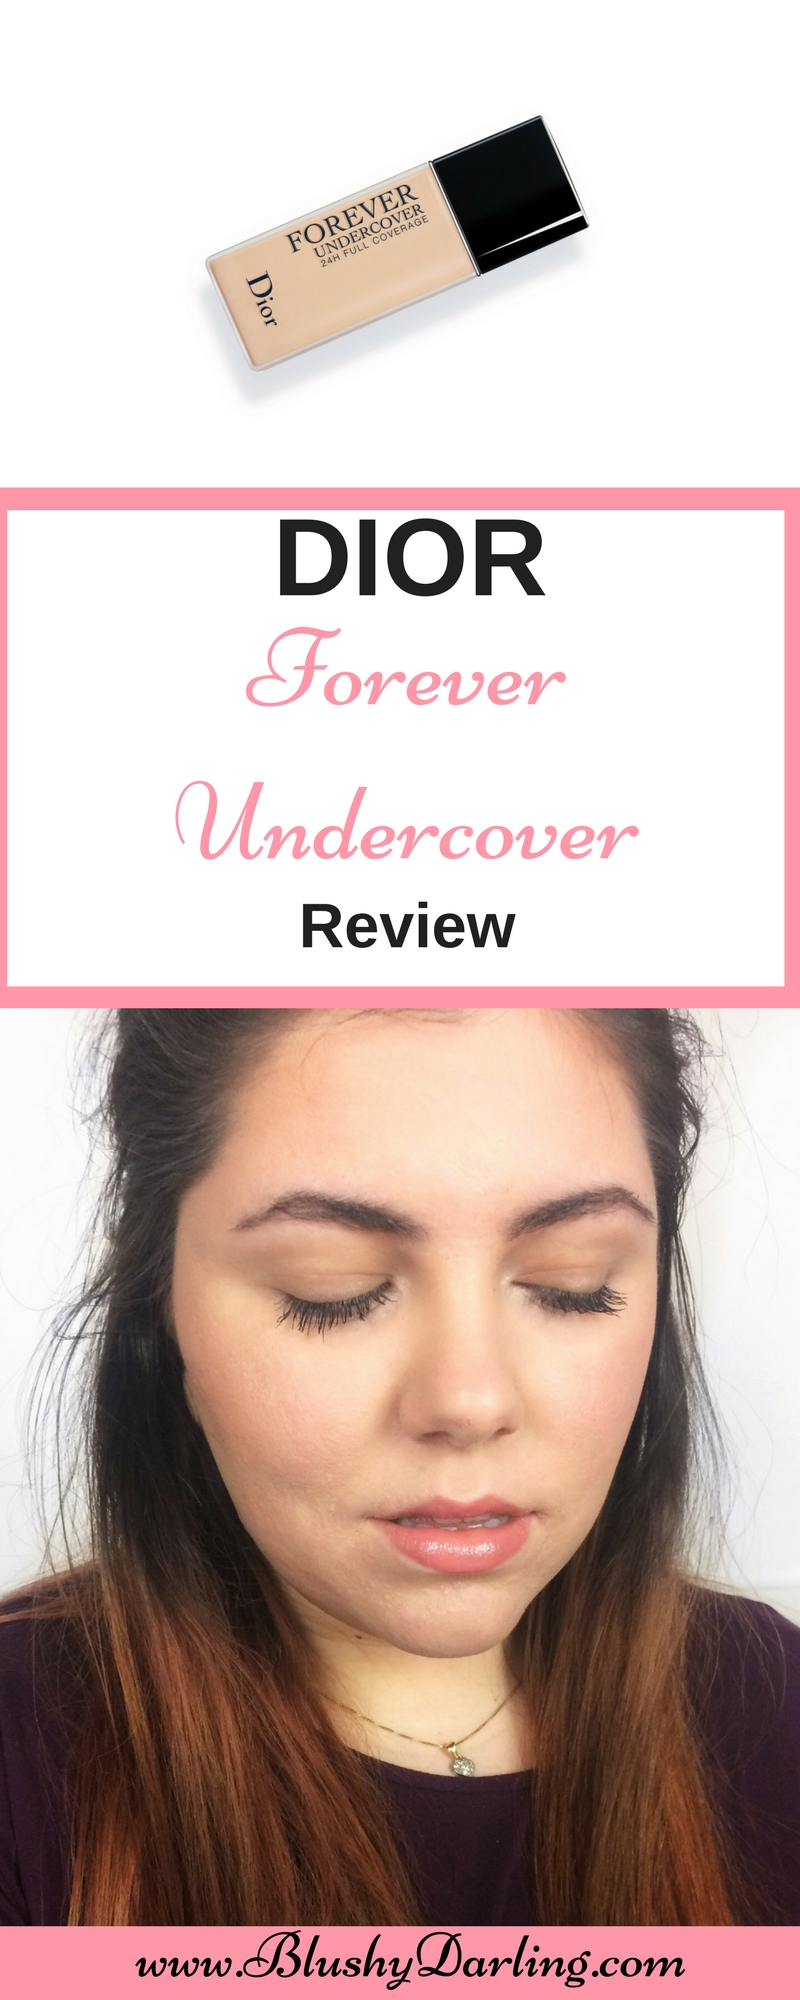 Dior Forever Undercover Foundation Review.jpg